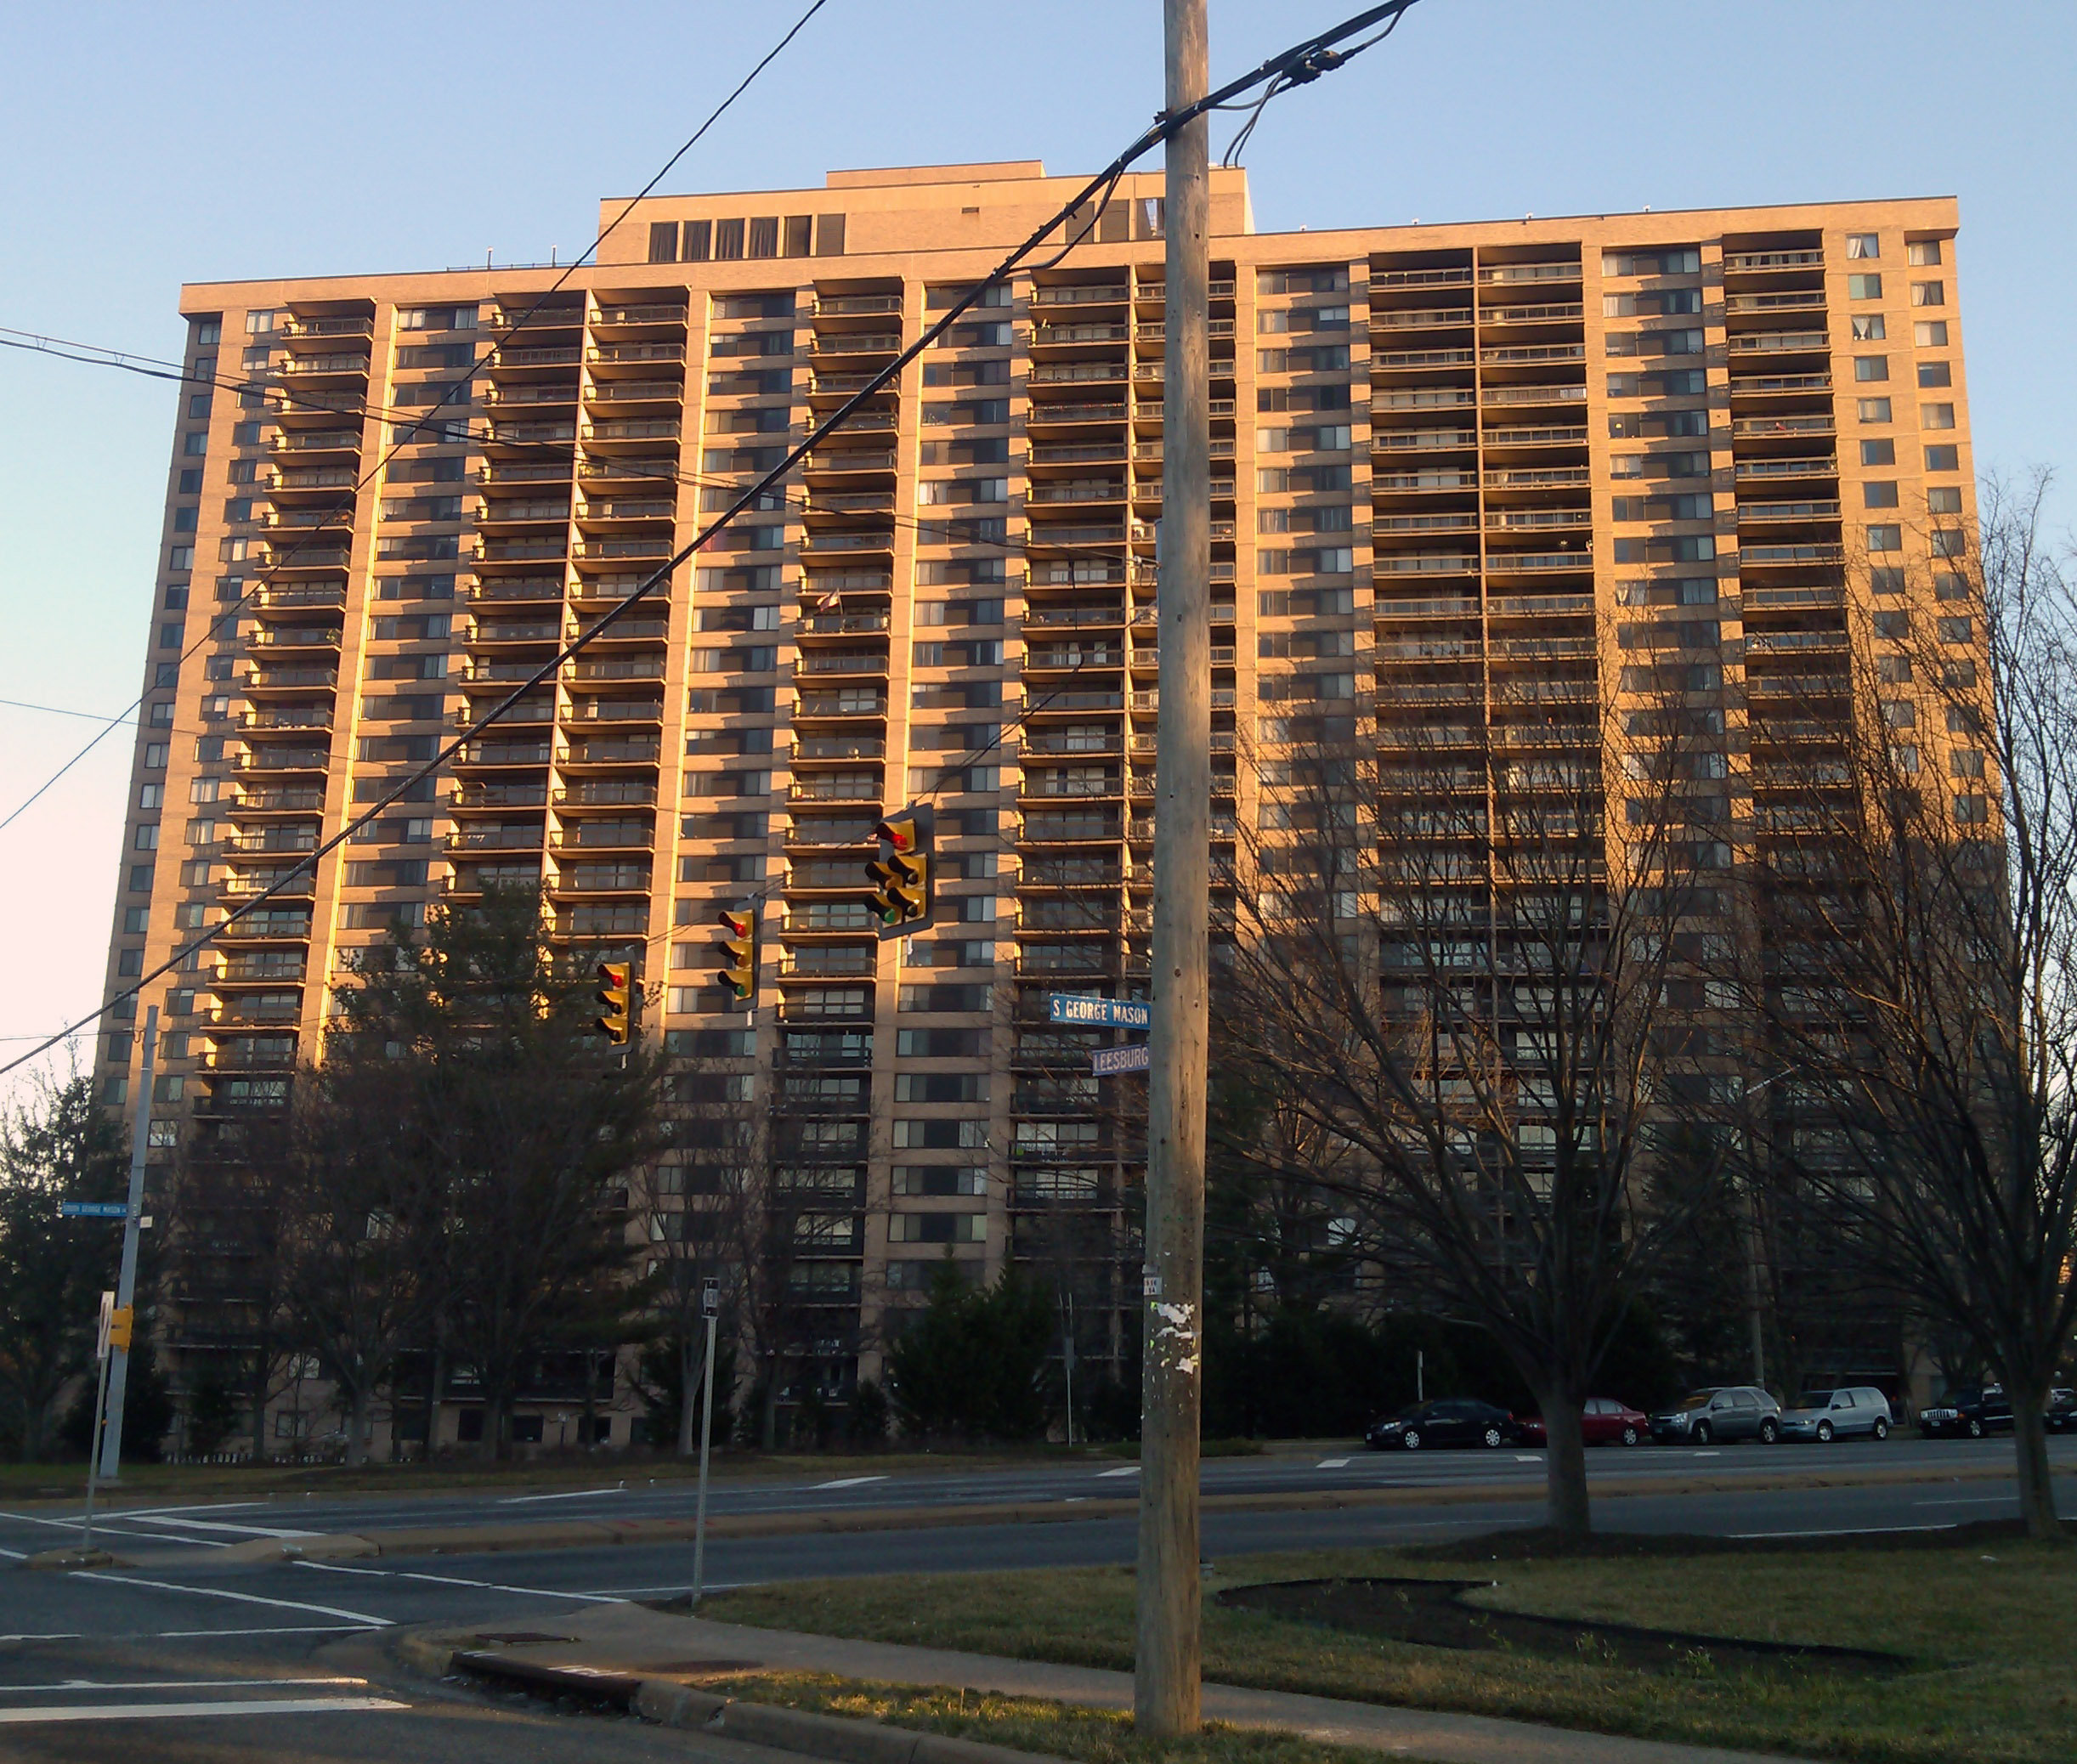 Skyline Plaza is a high rise condominium